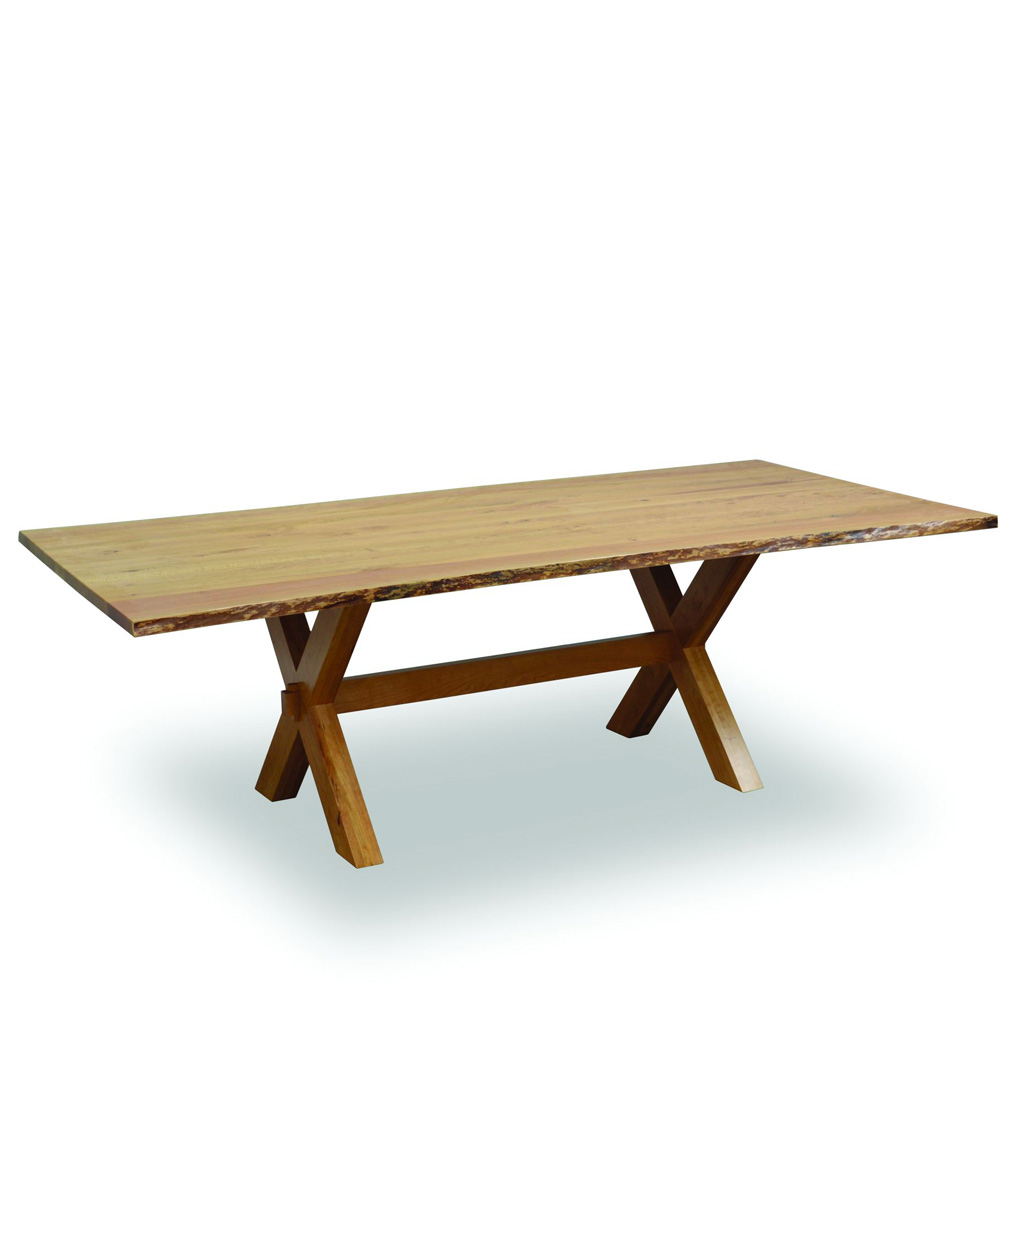 Poly Lumber Outdoor Furniture Frontier Dining Table with Live Edge - Amish Direct Furniture